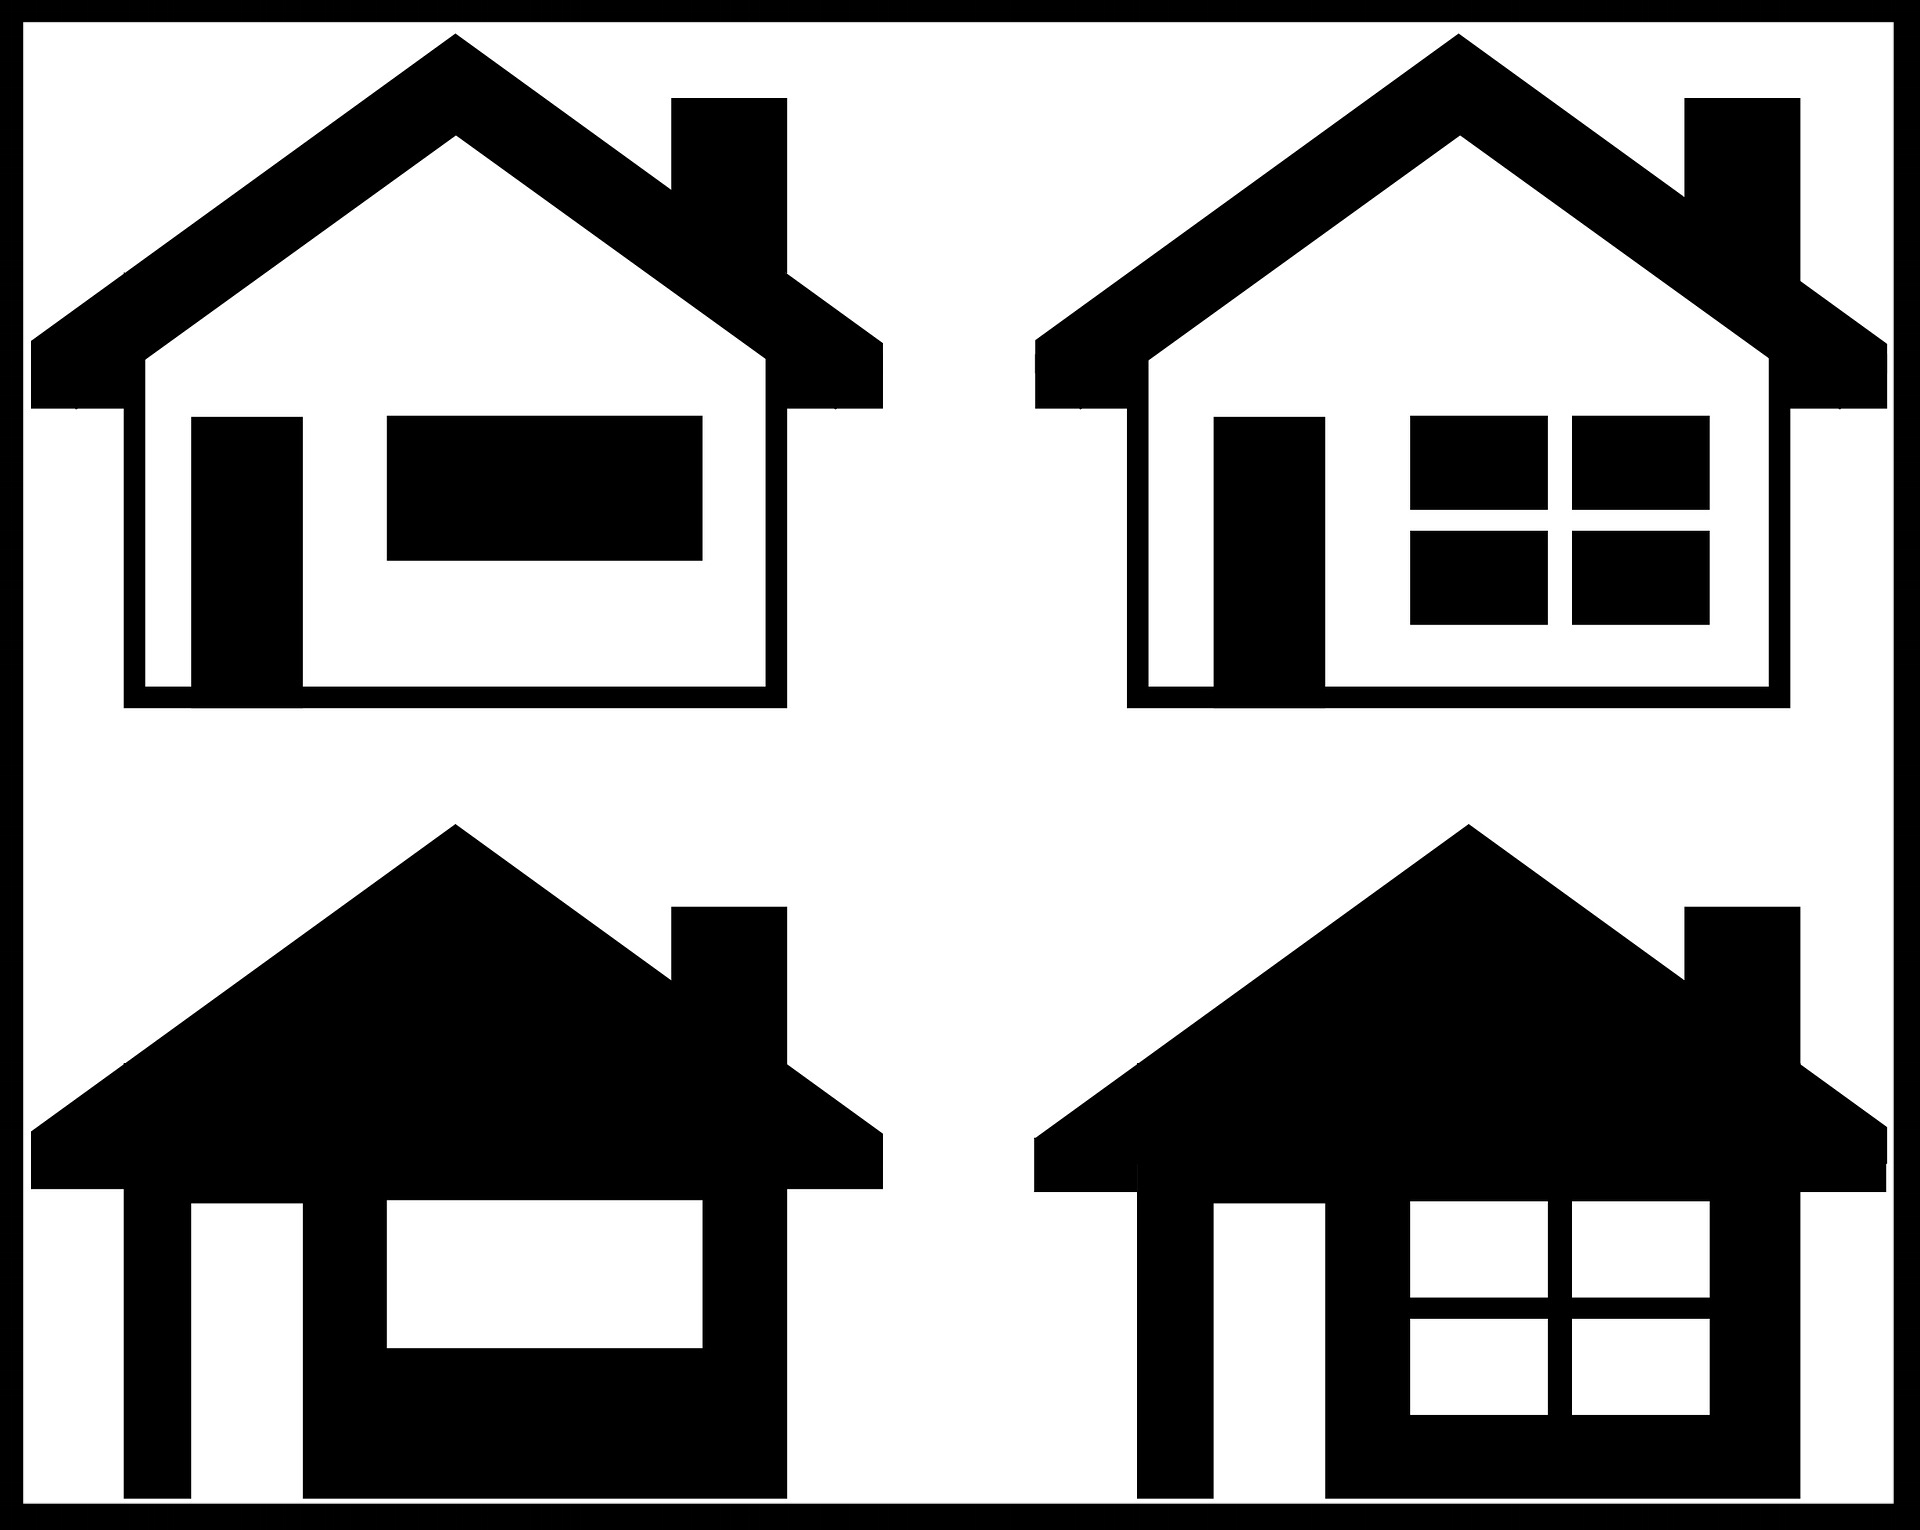 STYLE OF HOUSE -